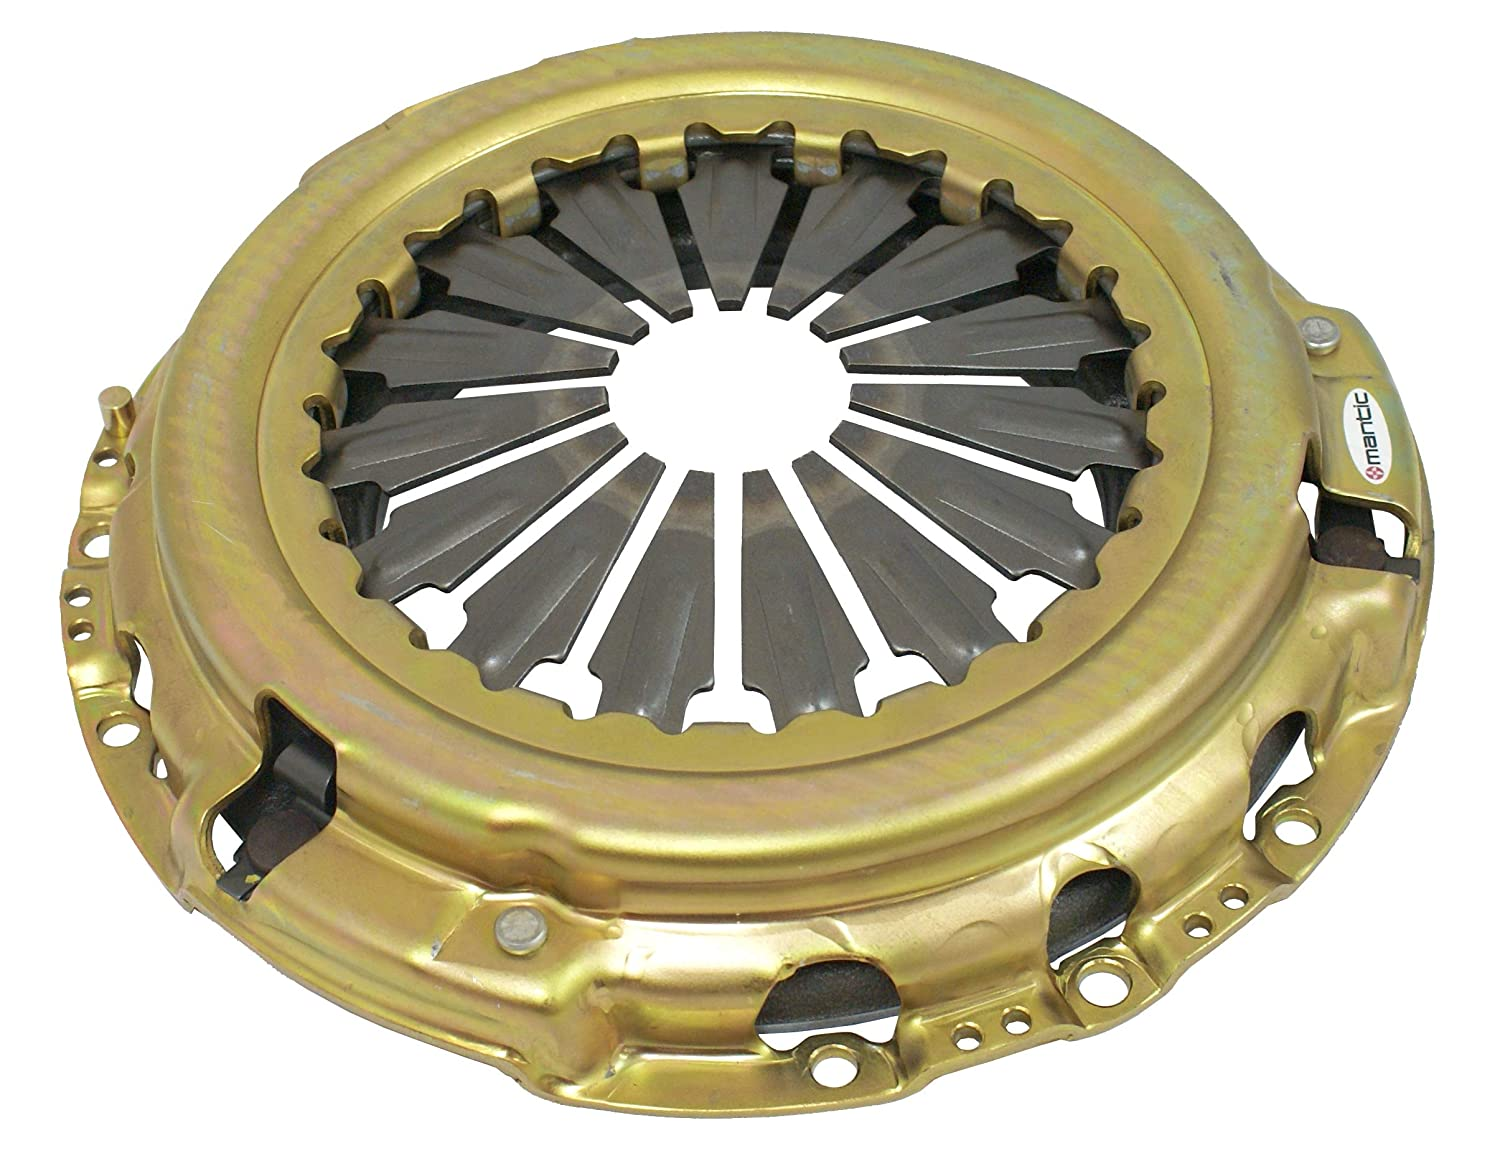 4Terrain Heavy Duty Premium Clutch Kit | 4Terrain ER2 Heavy Duty Cover Assembly | Heavy Duty Clutch Plate for improved operating life | Release bearing ...